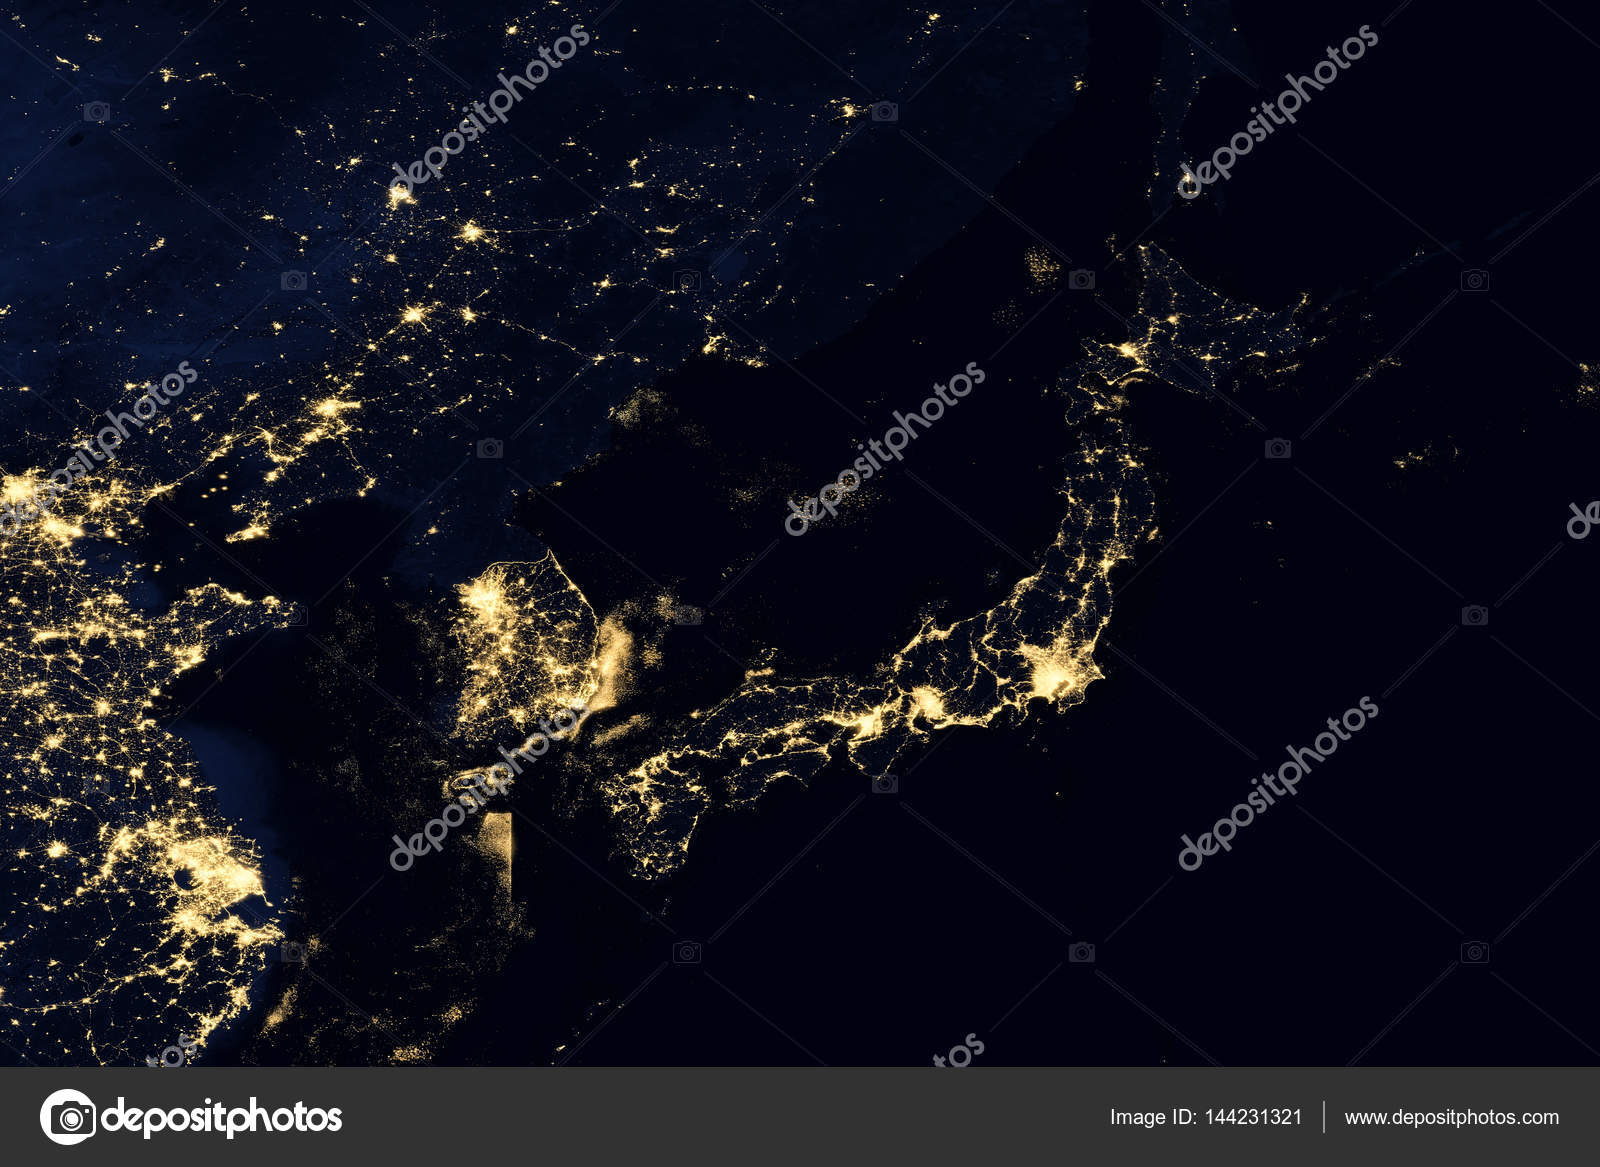 City lights on world map japan stock photo nasaage 144231321 city lights on world map japan elements of this image are furnished by nasa photo by nasaage gumiabroncs Gallery